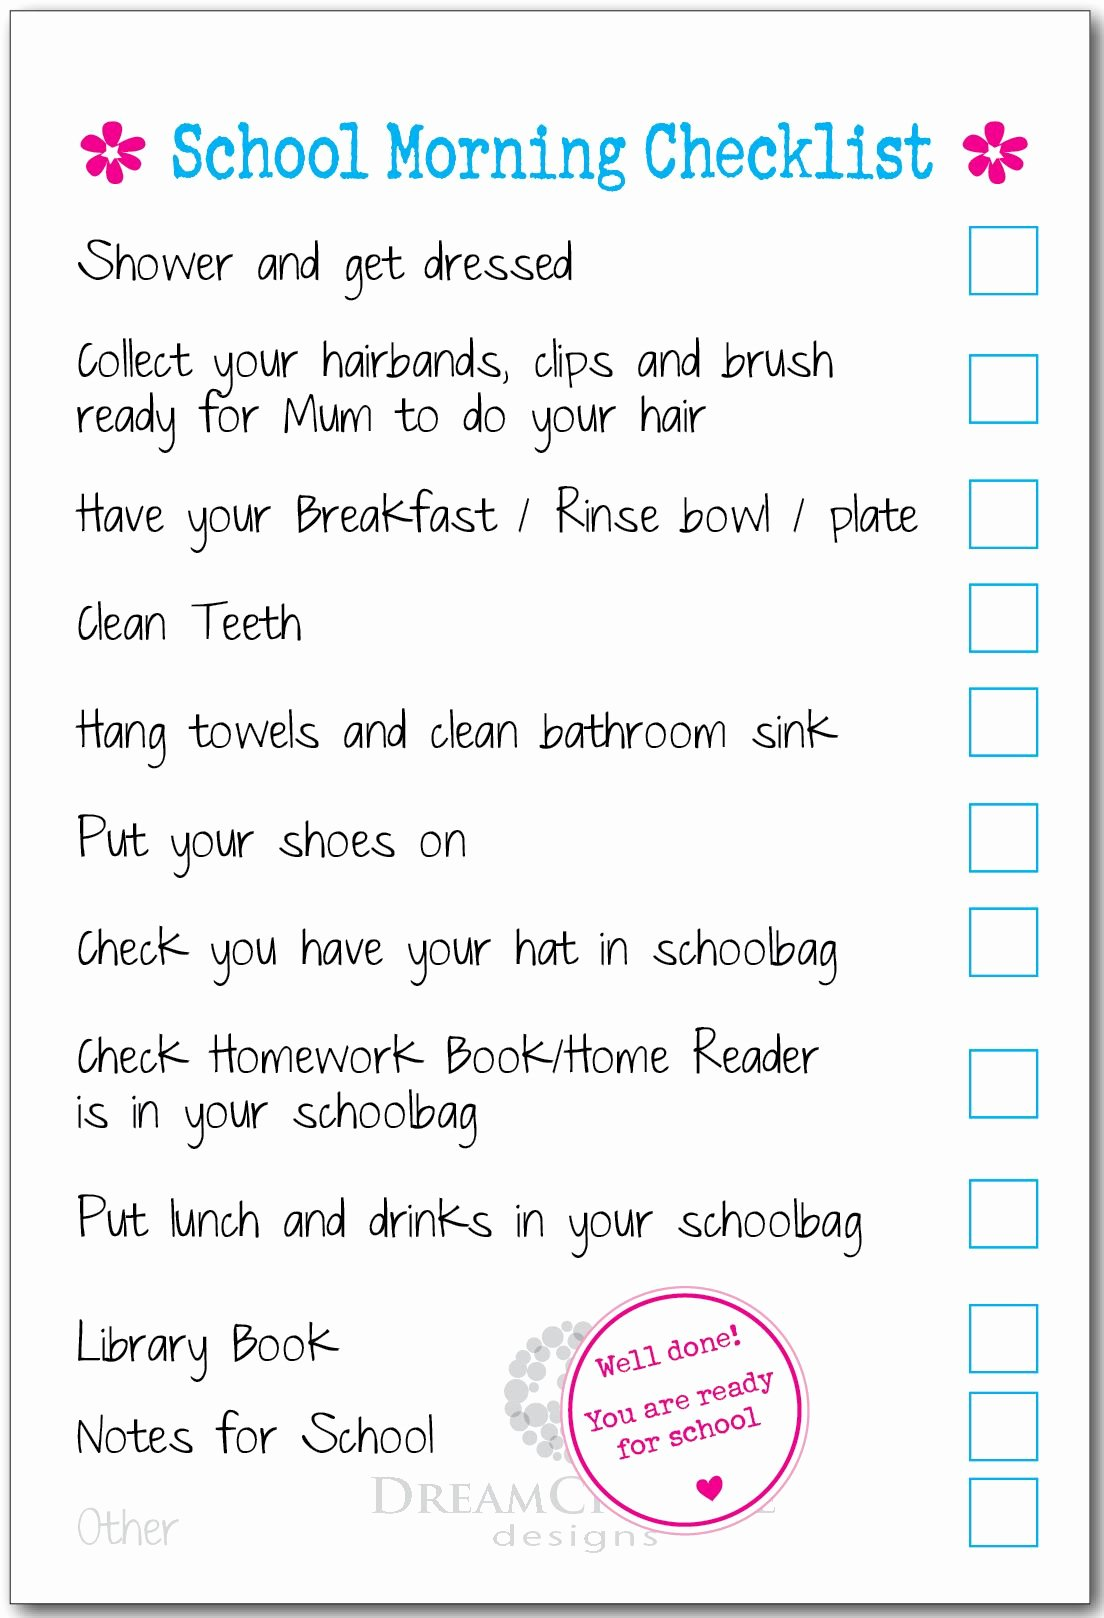 Morning Routine Checklist Template Awesome Morning Checklist Template Samples Our Three Peas for Kids